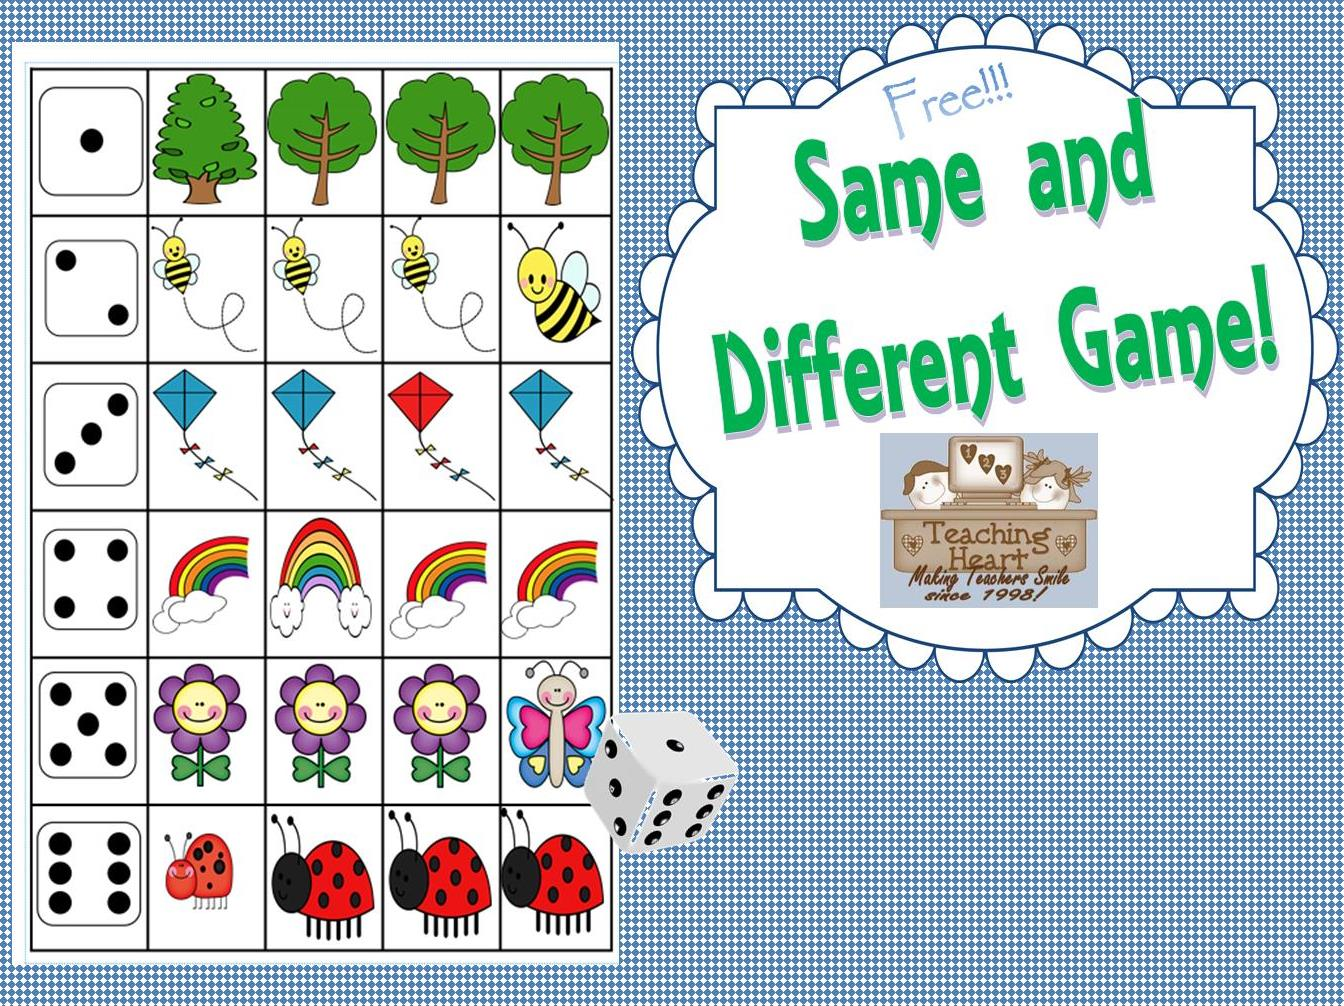 Same And Different Dice Game Free Teaching Heart Blog